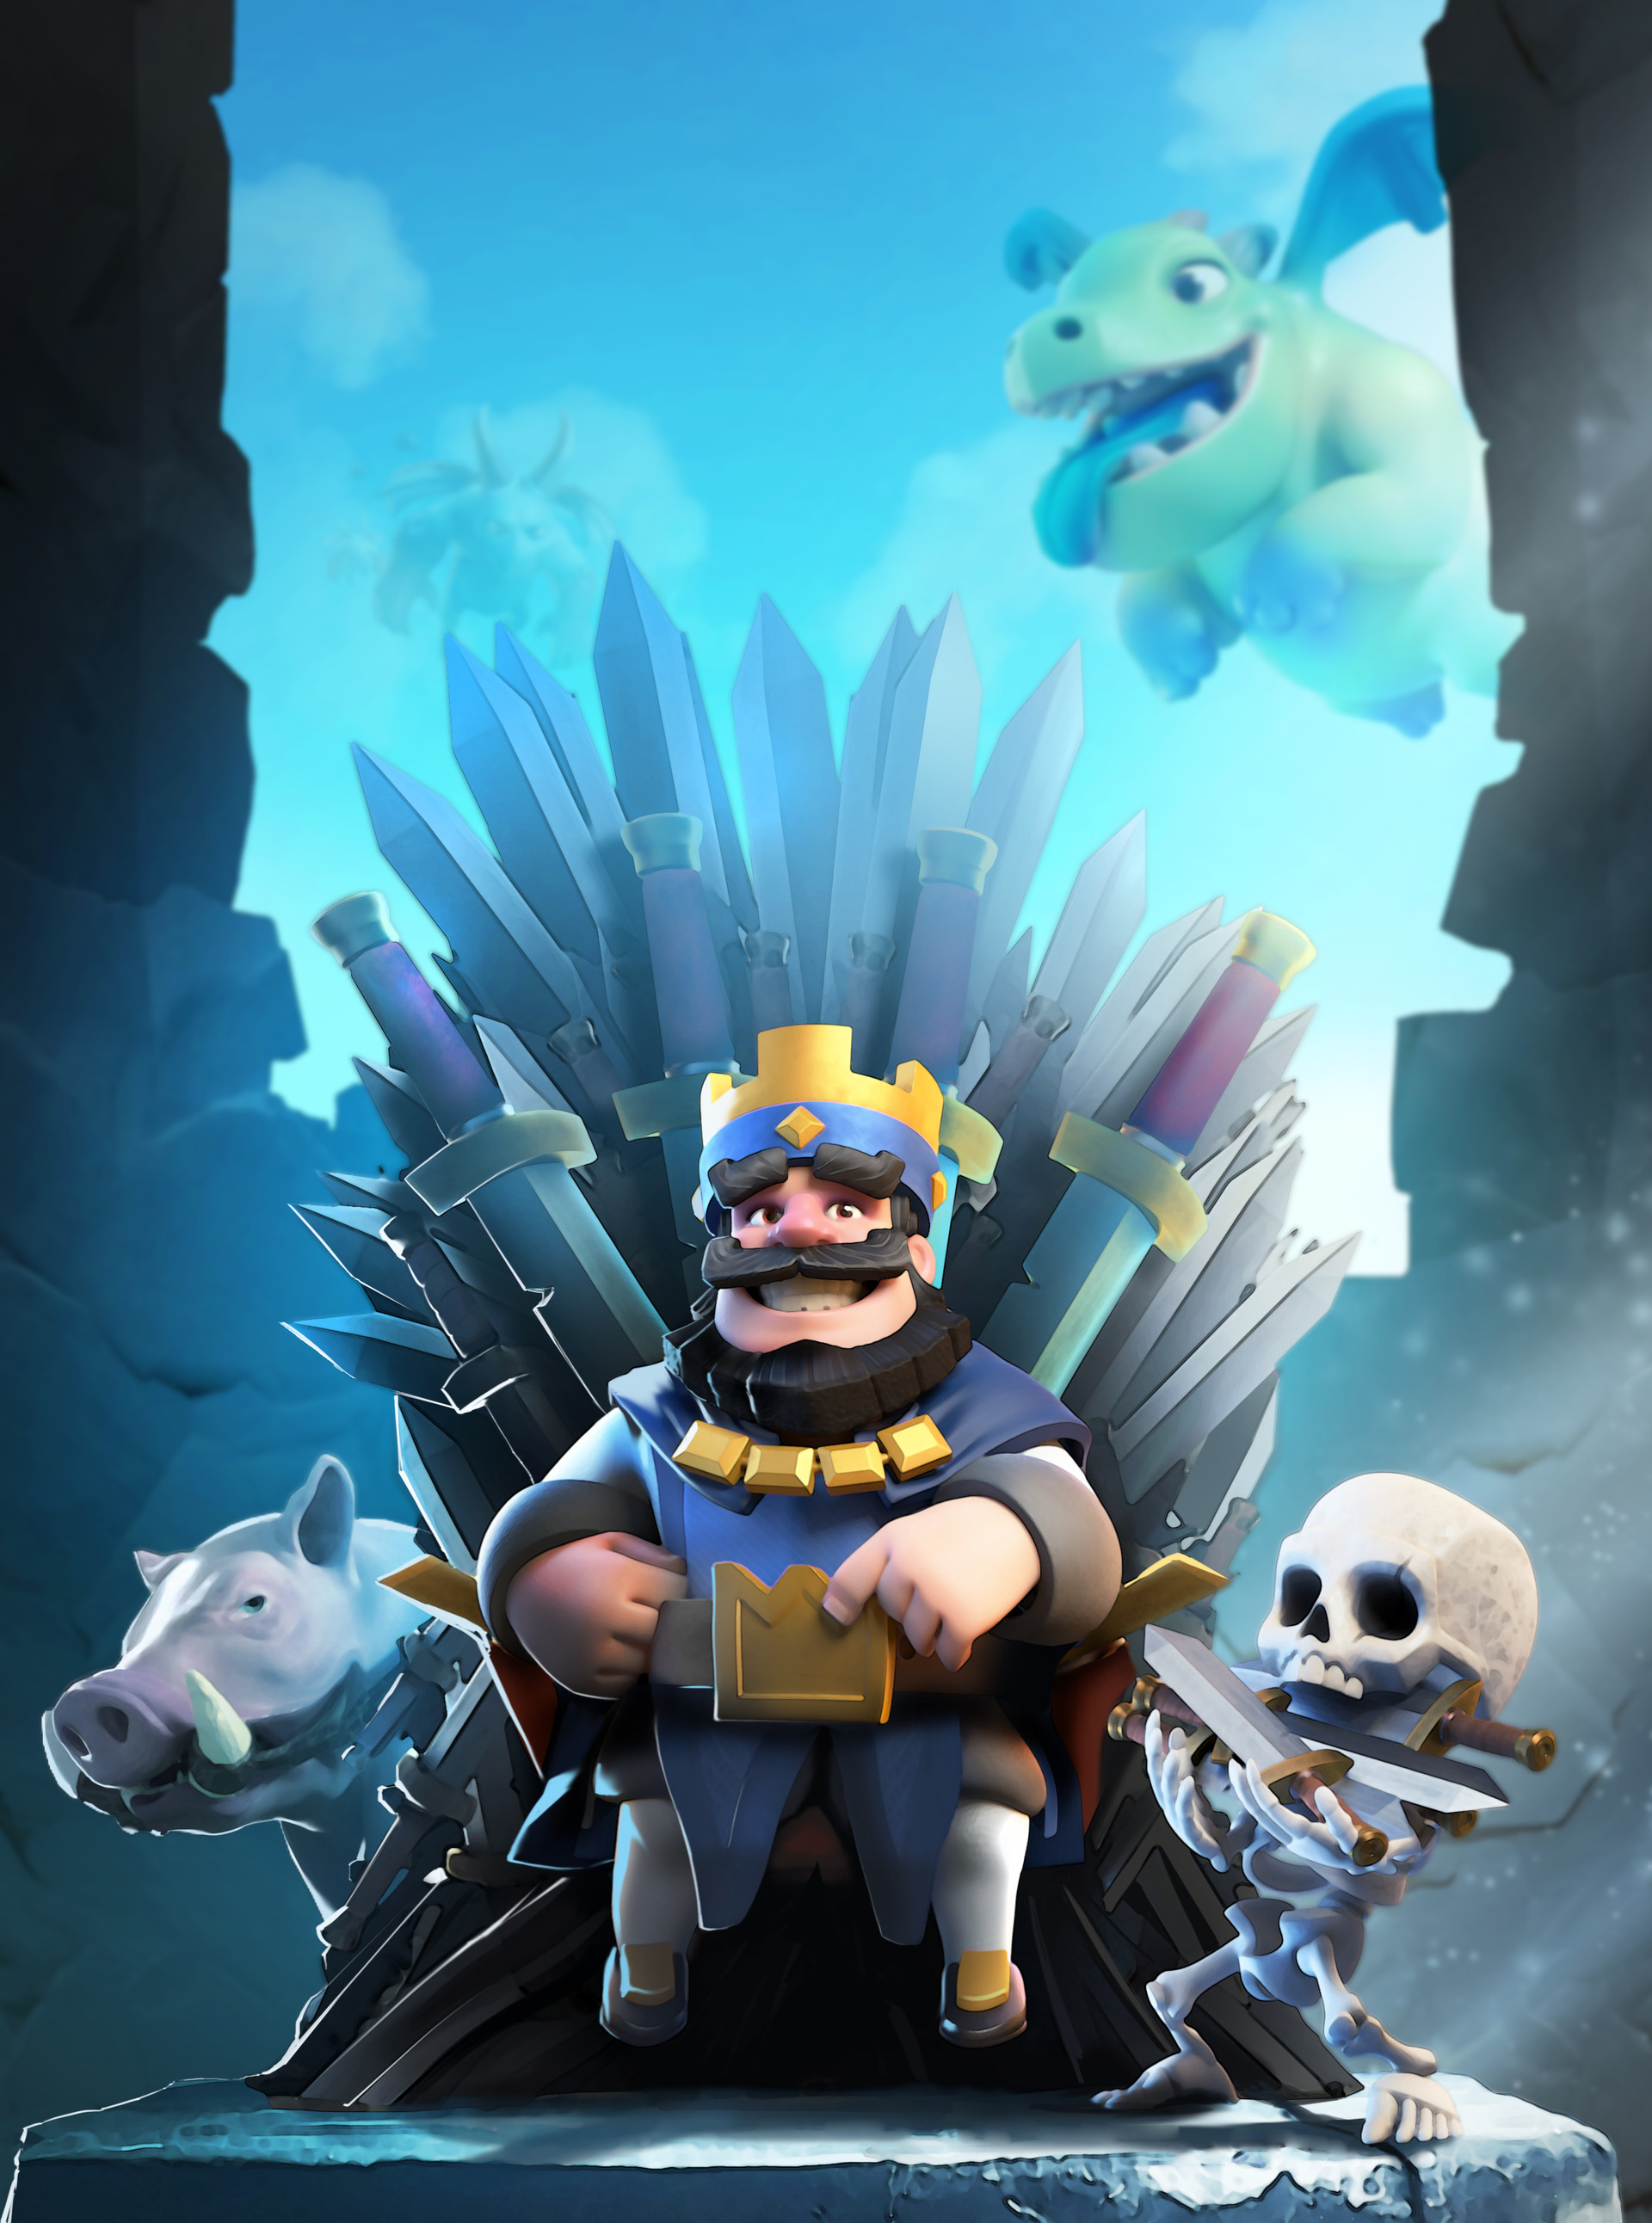 Kawaii Iphone Wallpaper Artstation Clash Royale Petar Milivojevic